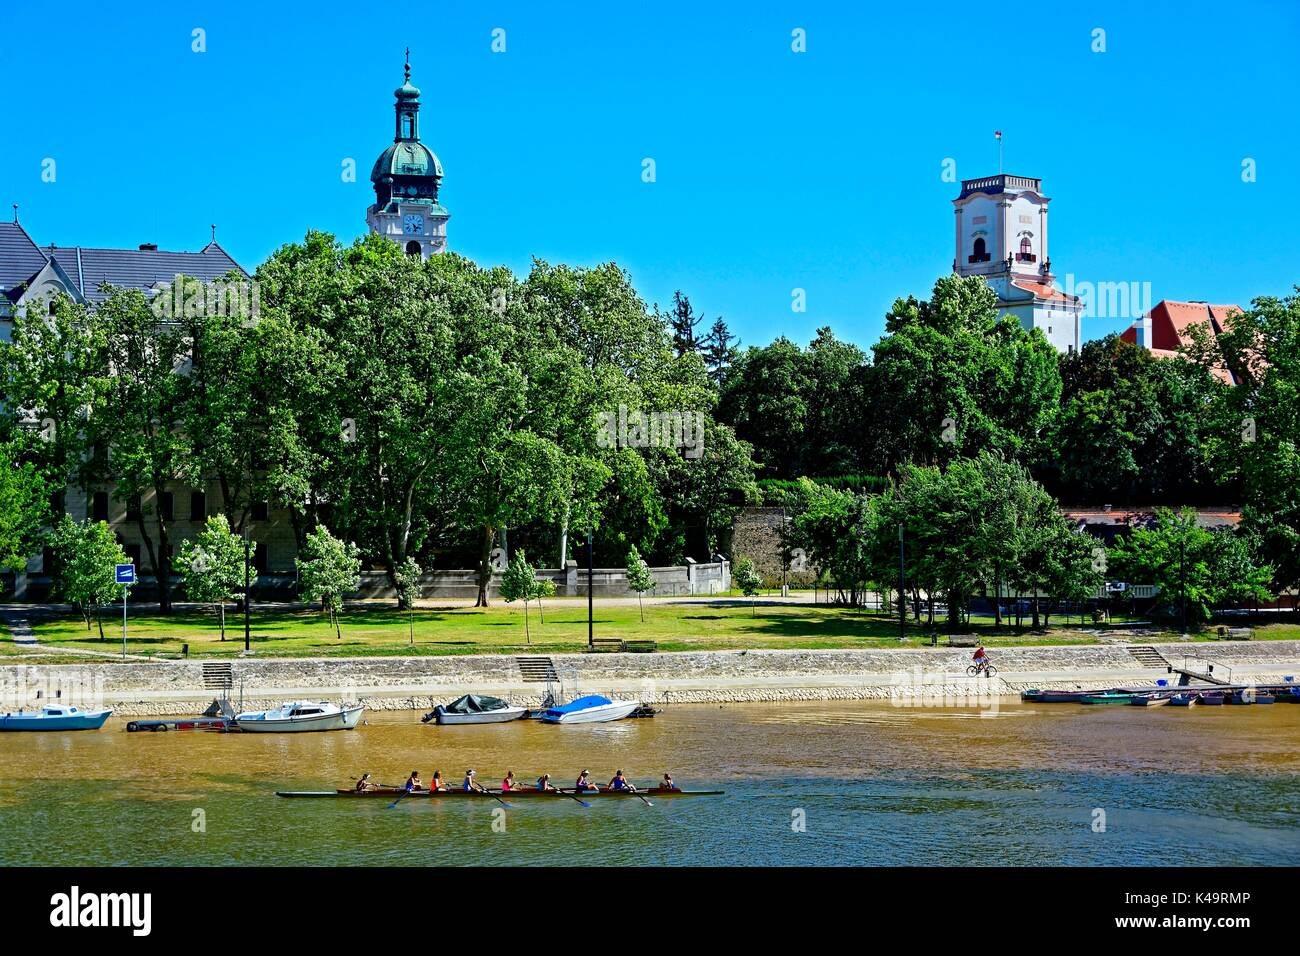 Aft Rowing Boat Training On The Moson Danube In Gyor Stock Photo